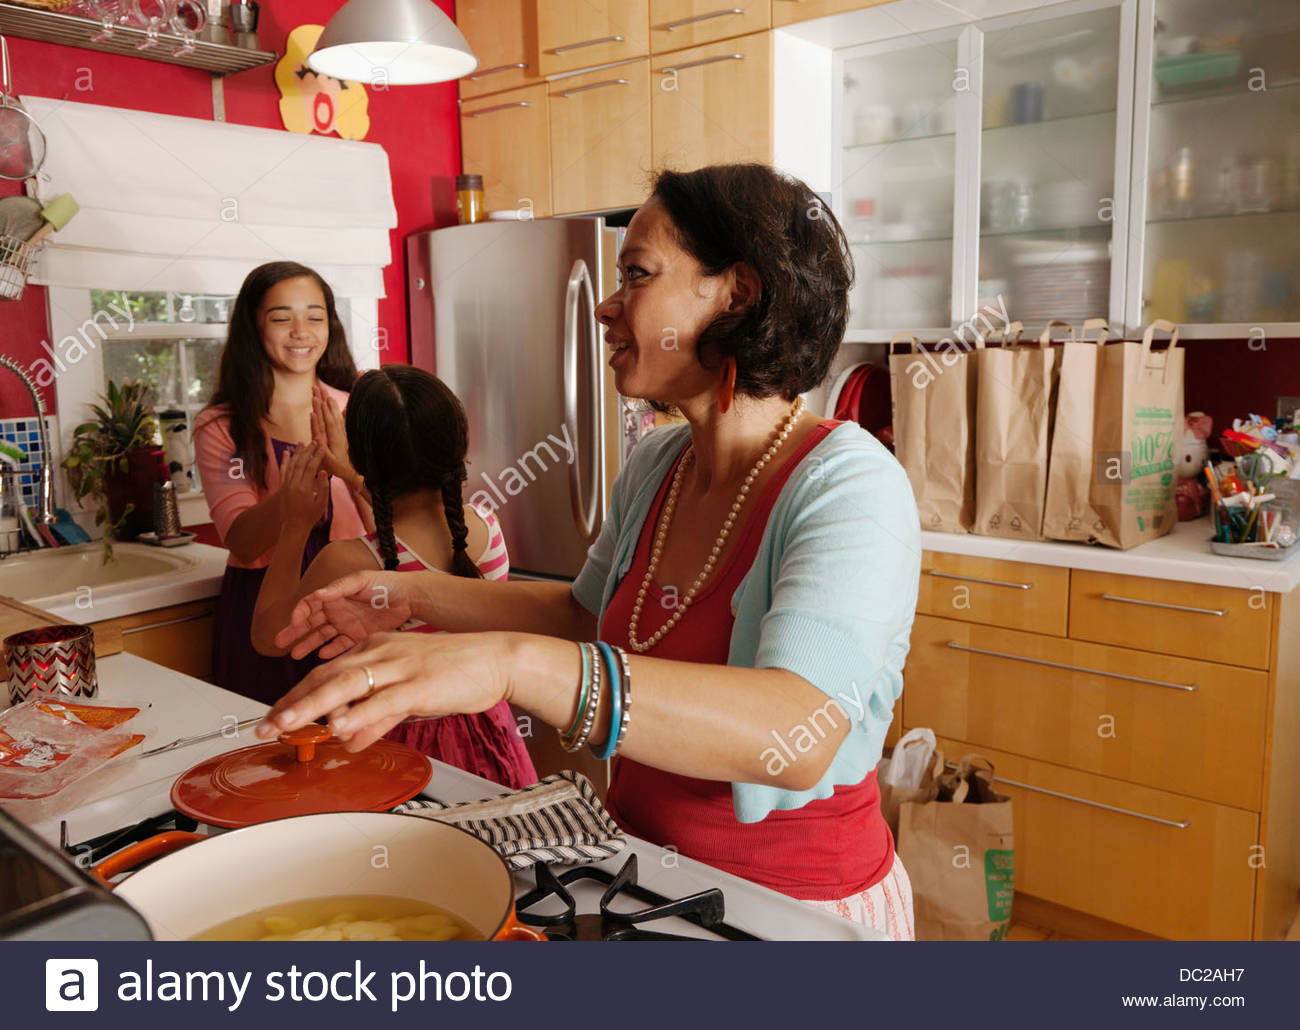 Mother and daughters in kitchen - Stock Image